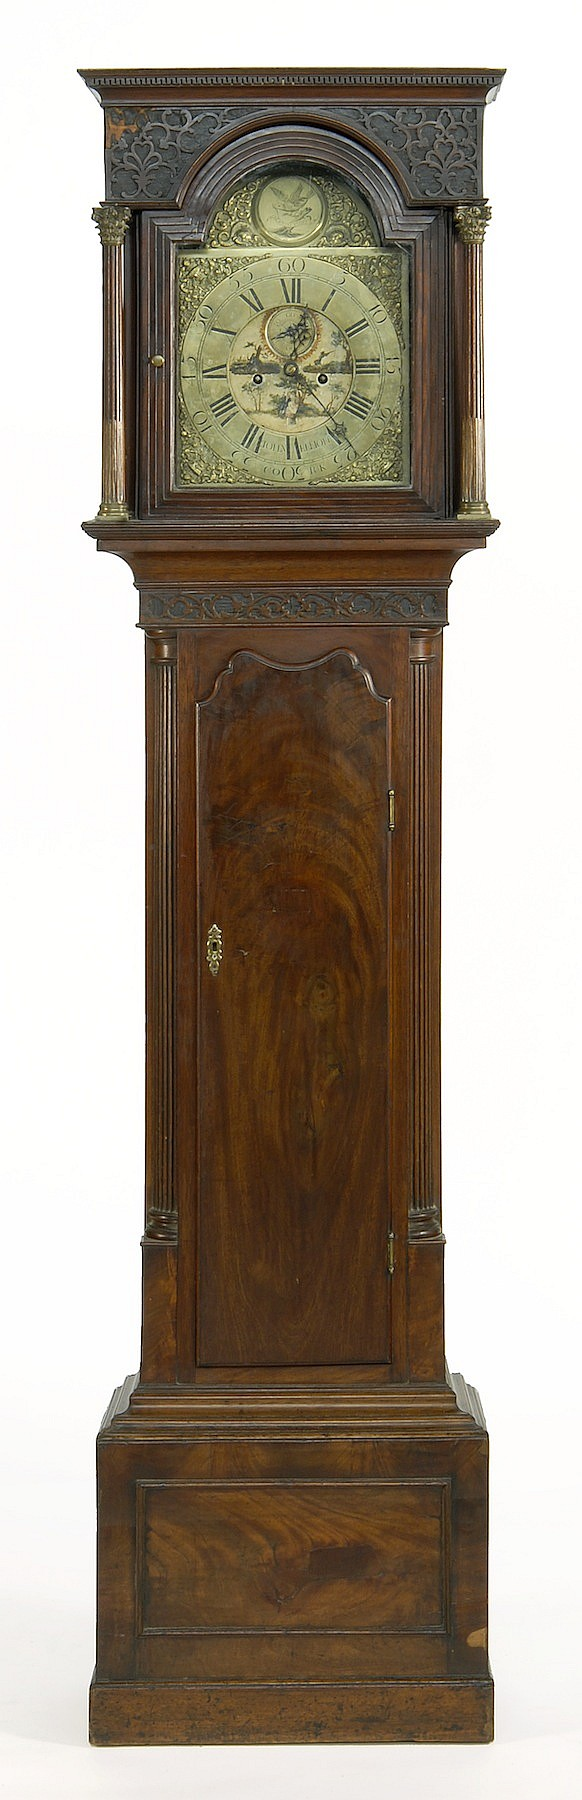 ENGLISH TALL-CASE CLOCK By John Elliott. In walnut and walnut veneers. Bonnet with modified dental molding above applied leaf carvin...